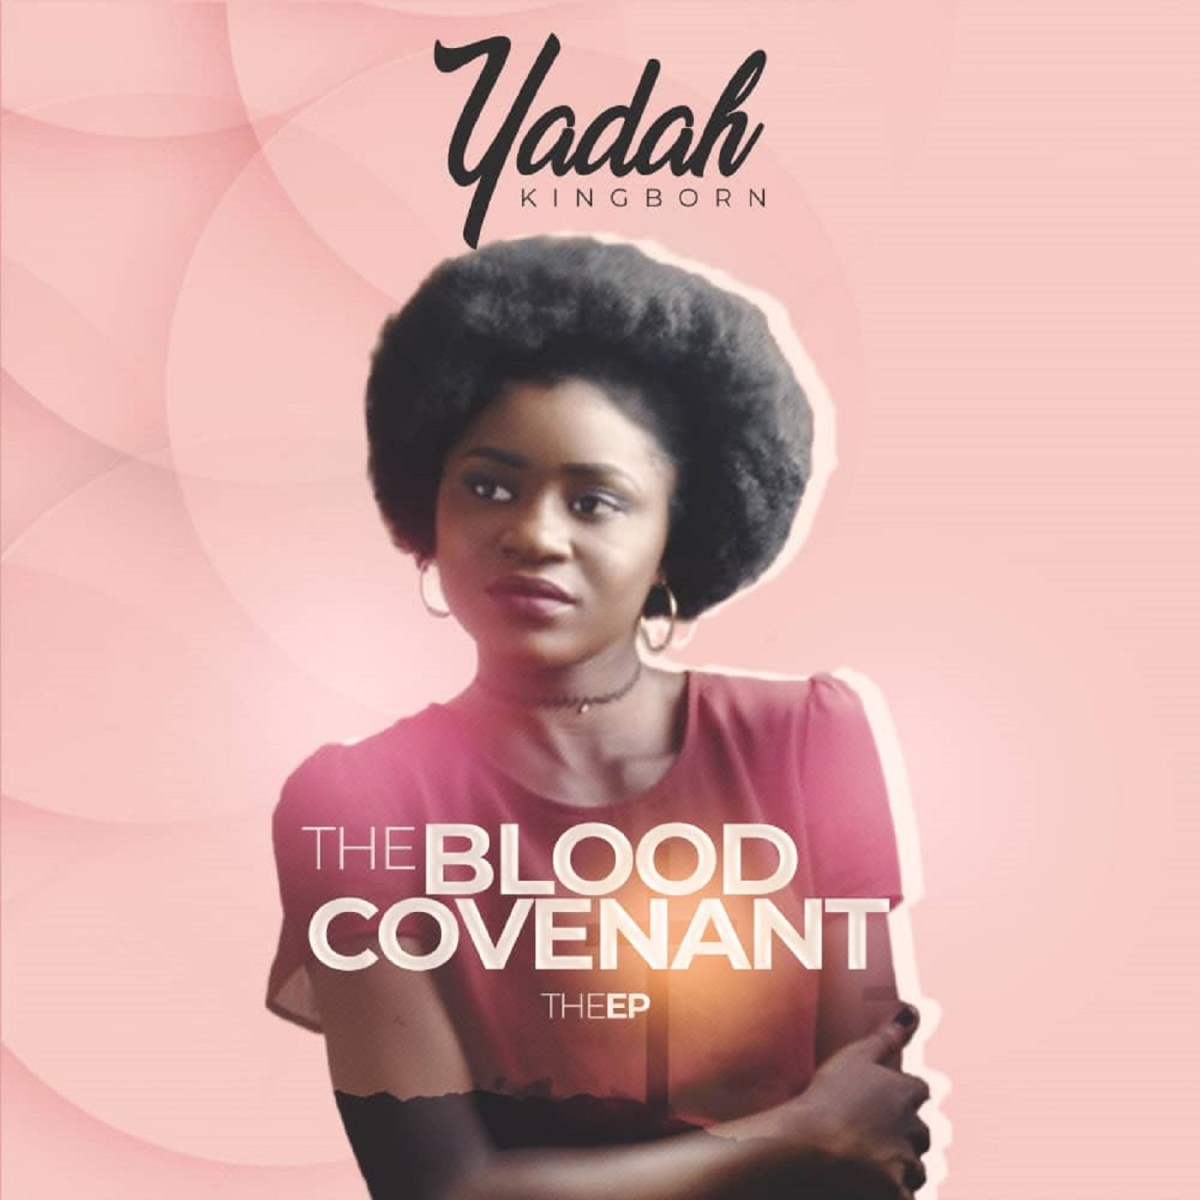 ALBUM: Yadah (KingBorn) - The Blood Covenant